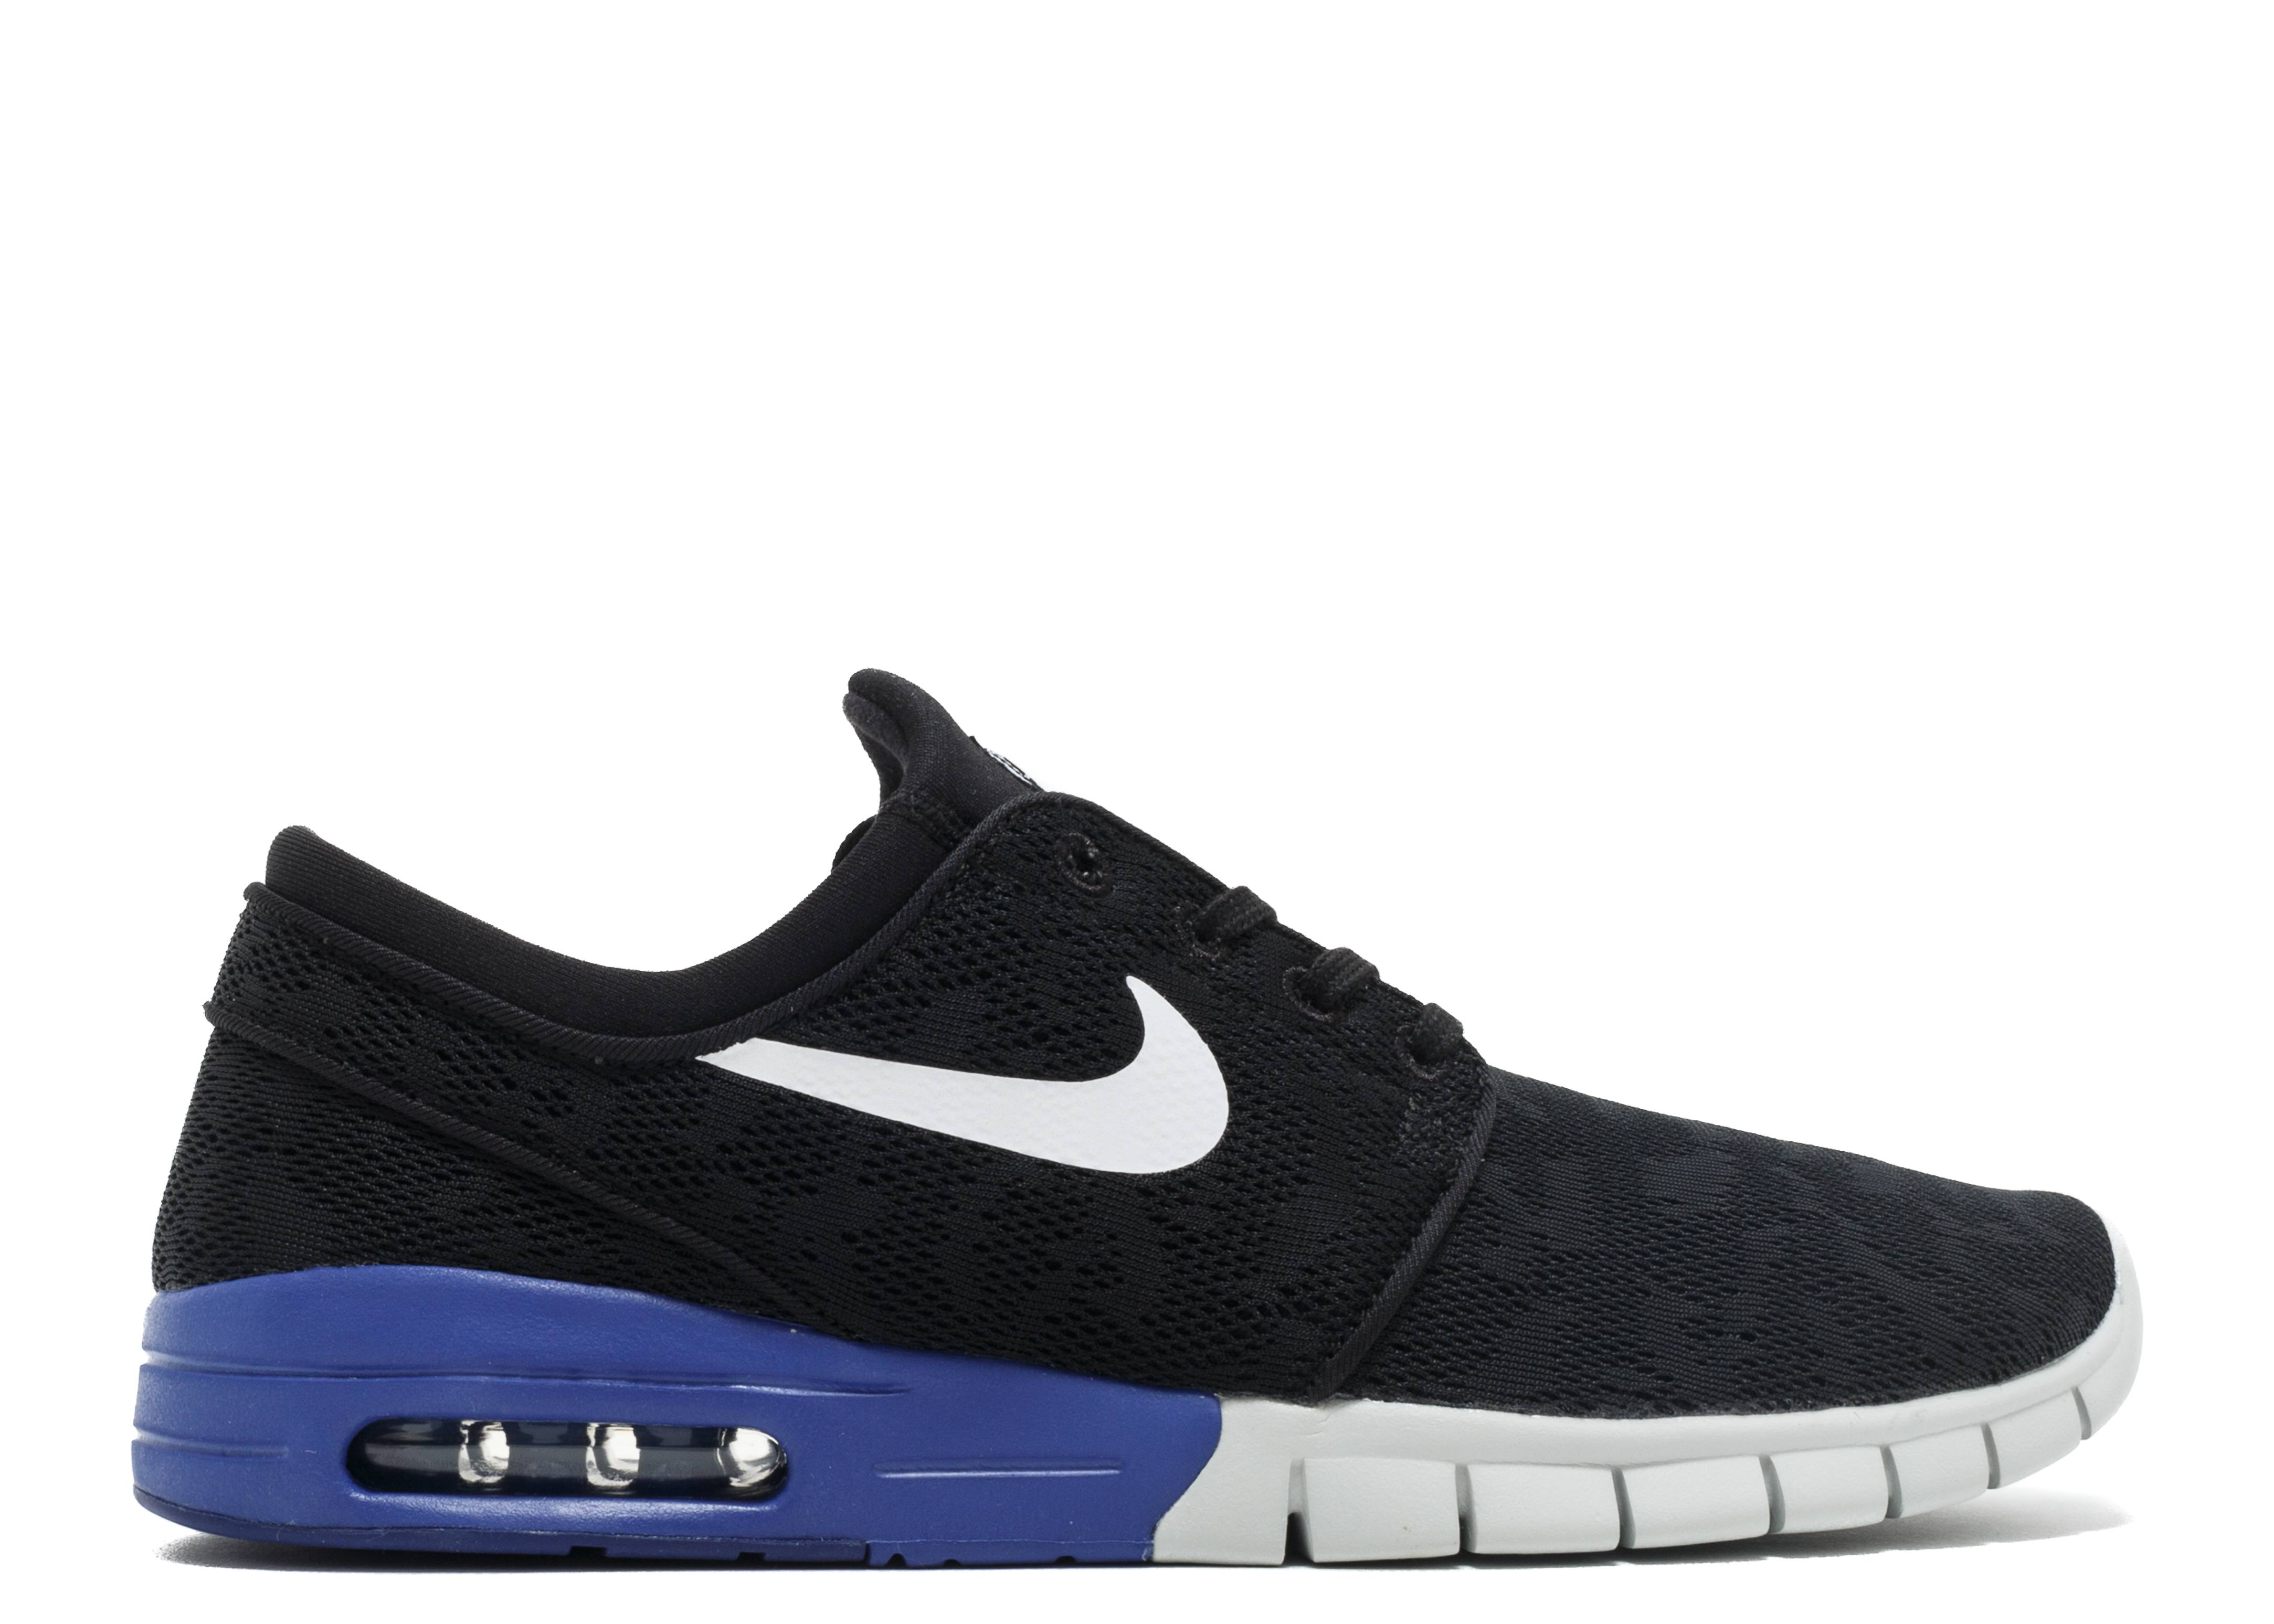 NIKE SB STEFAN JANOSKI MAX SZ 9 BLACK DEEP NIGHT WHITE